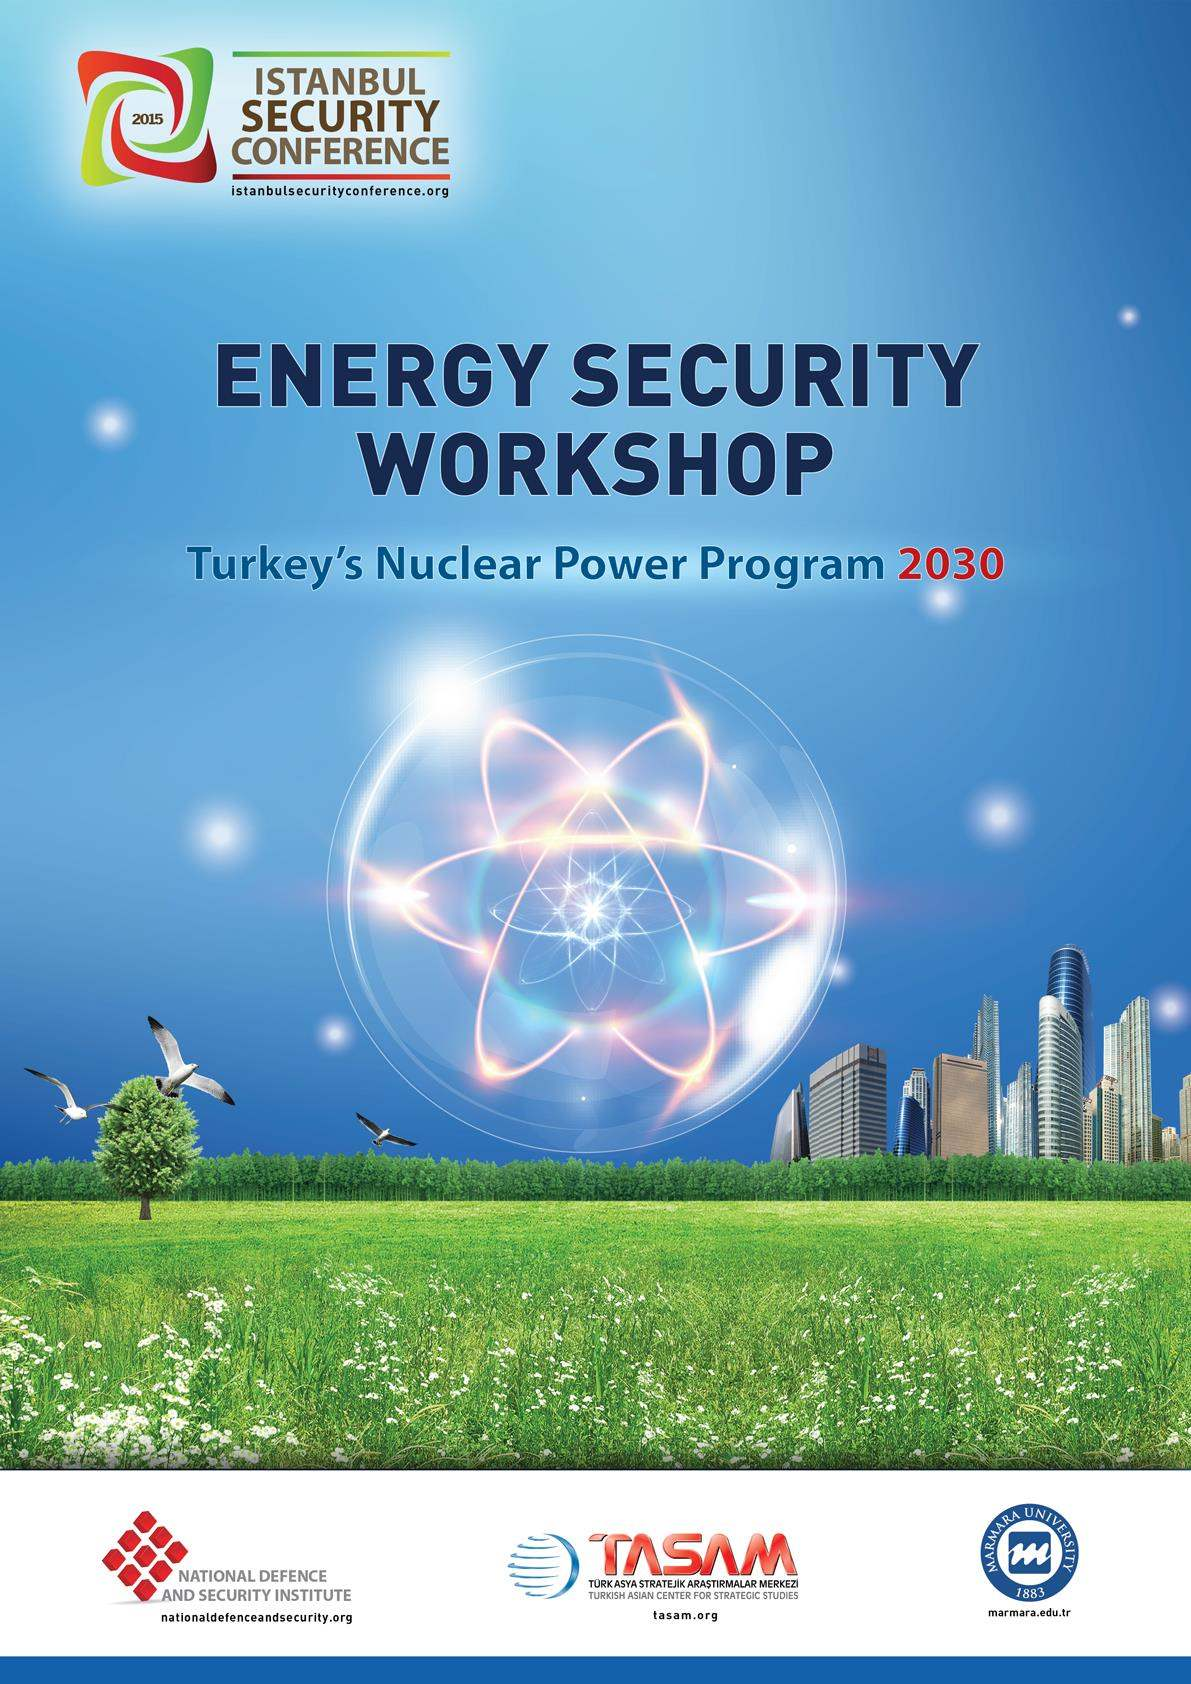 Energy Security Workshop | Istanbul Security Conference 2015